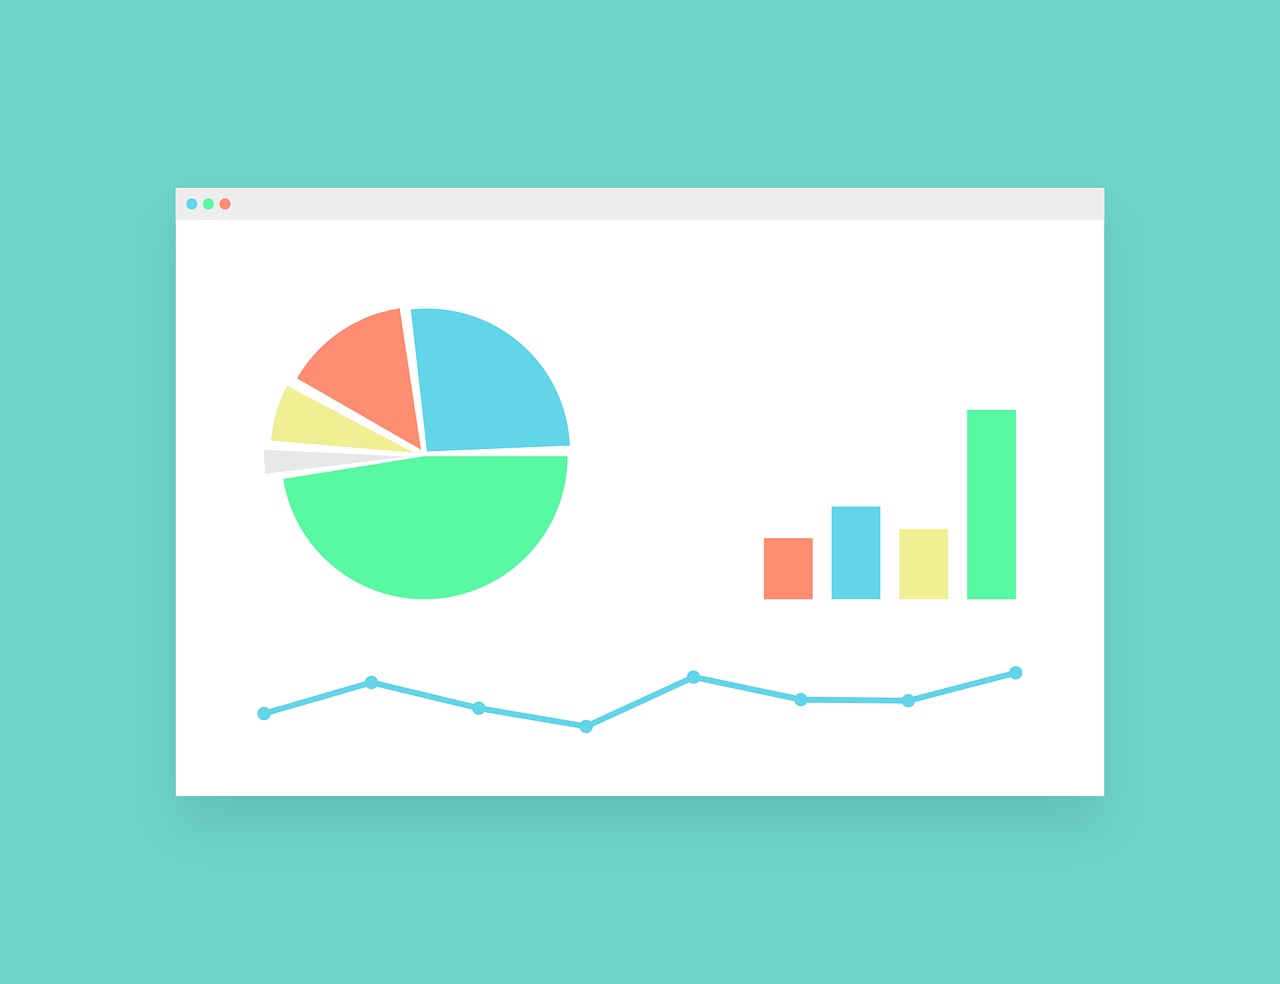 3 Reasons to Use Data Visualization in Your Next Marketing Meeting